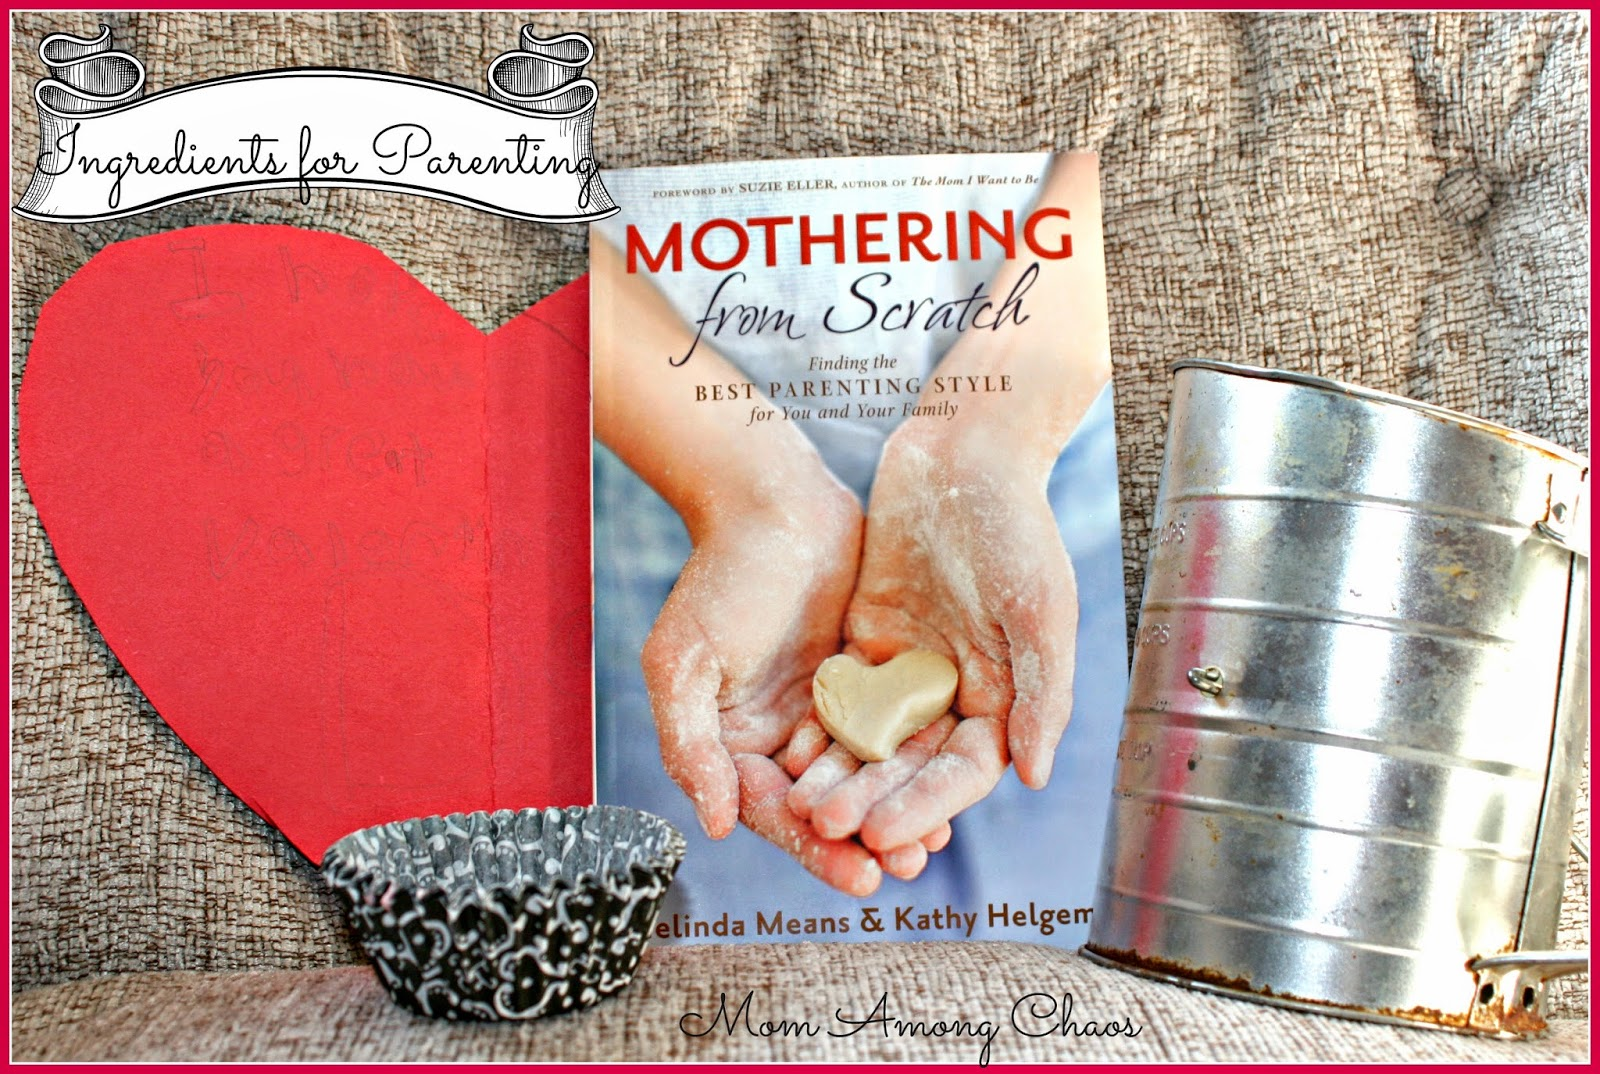 Mothering From Scratch, God, parenting, self help, advice, family christian, family, book review,